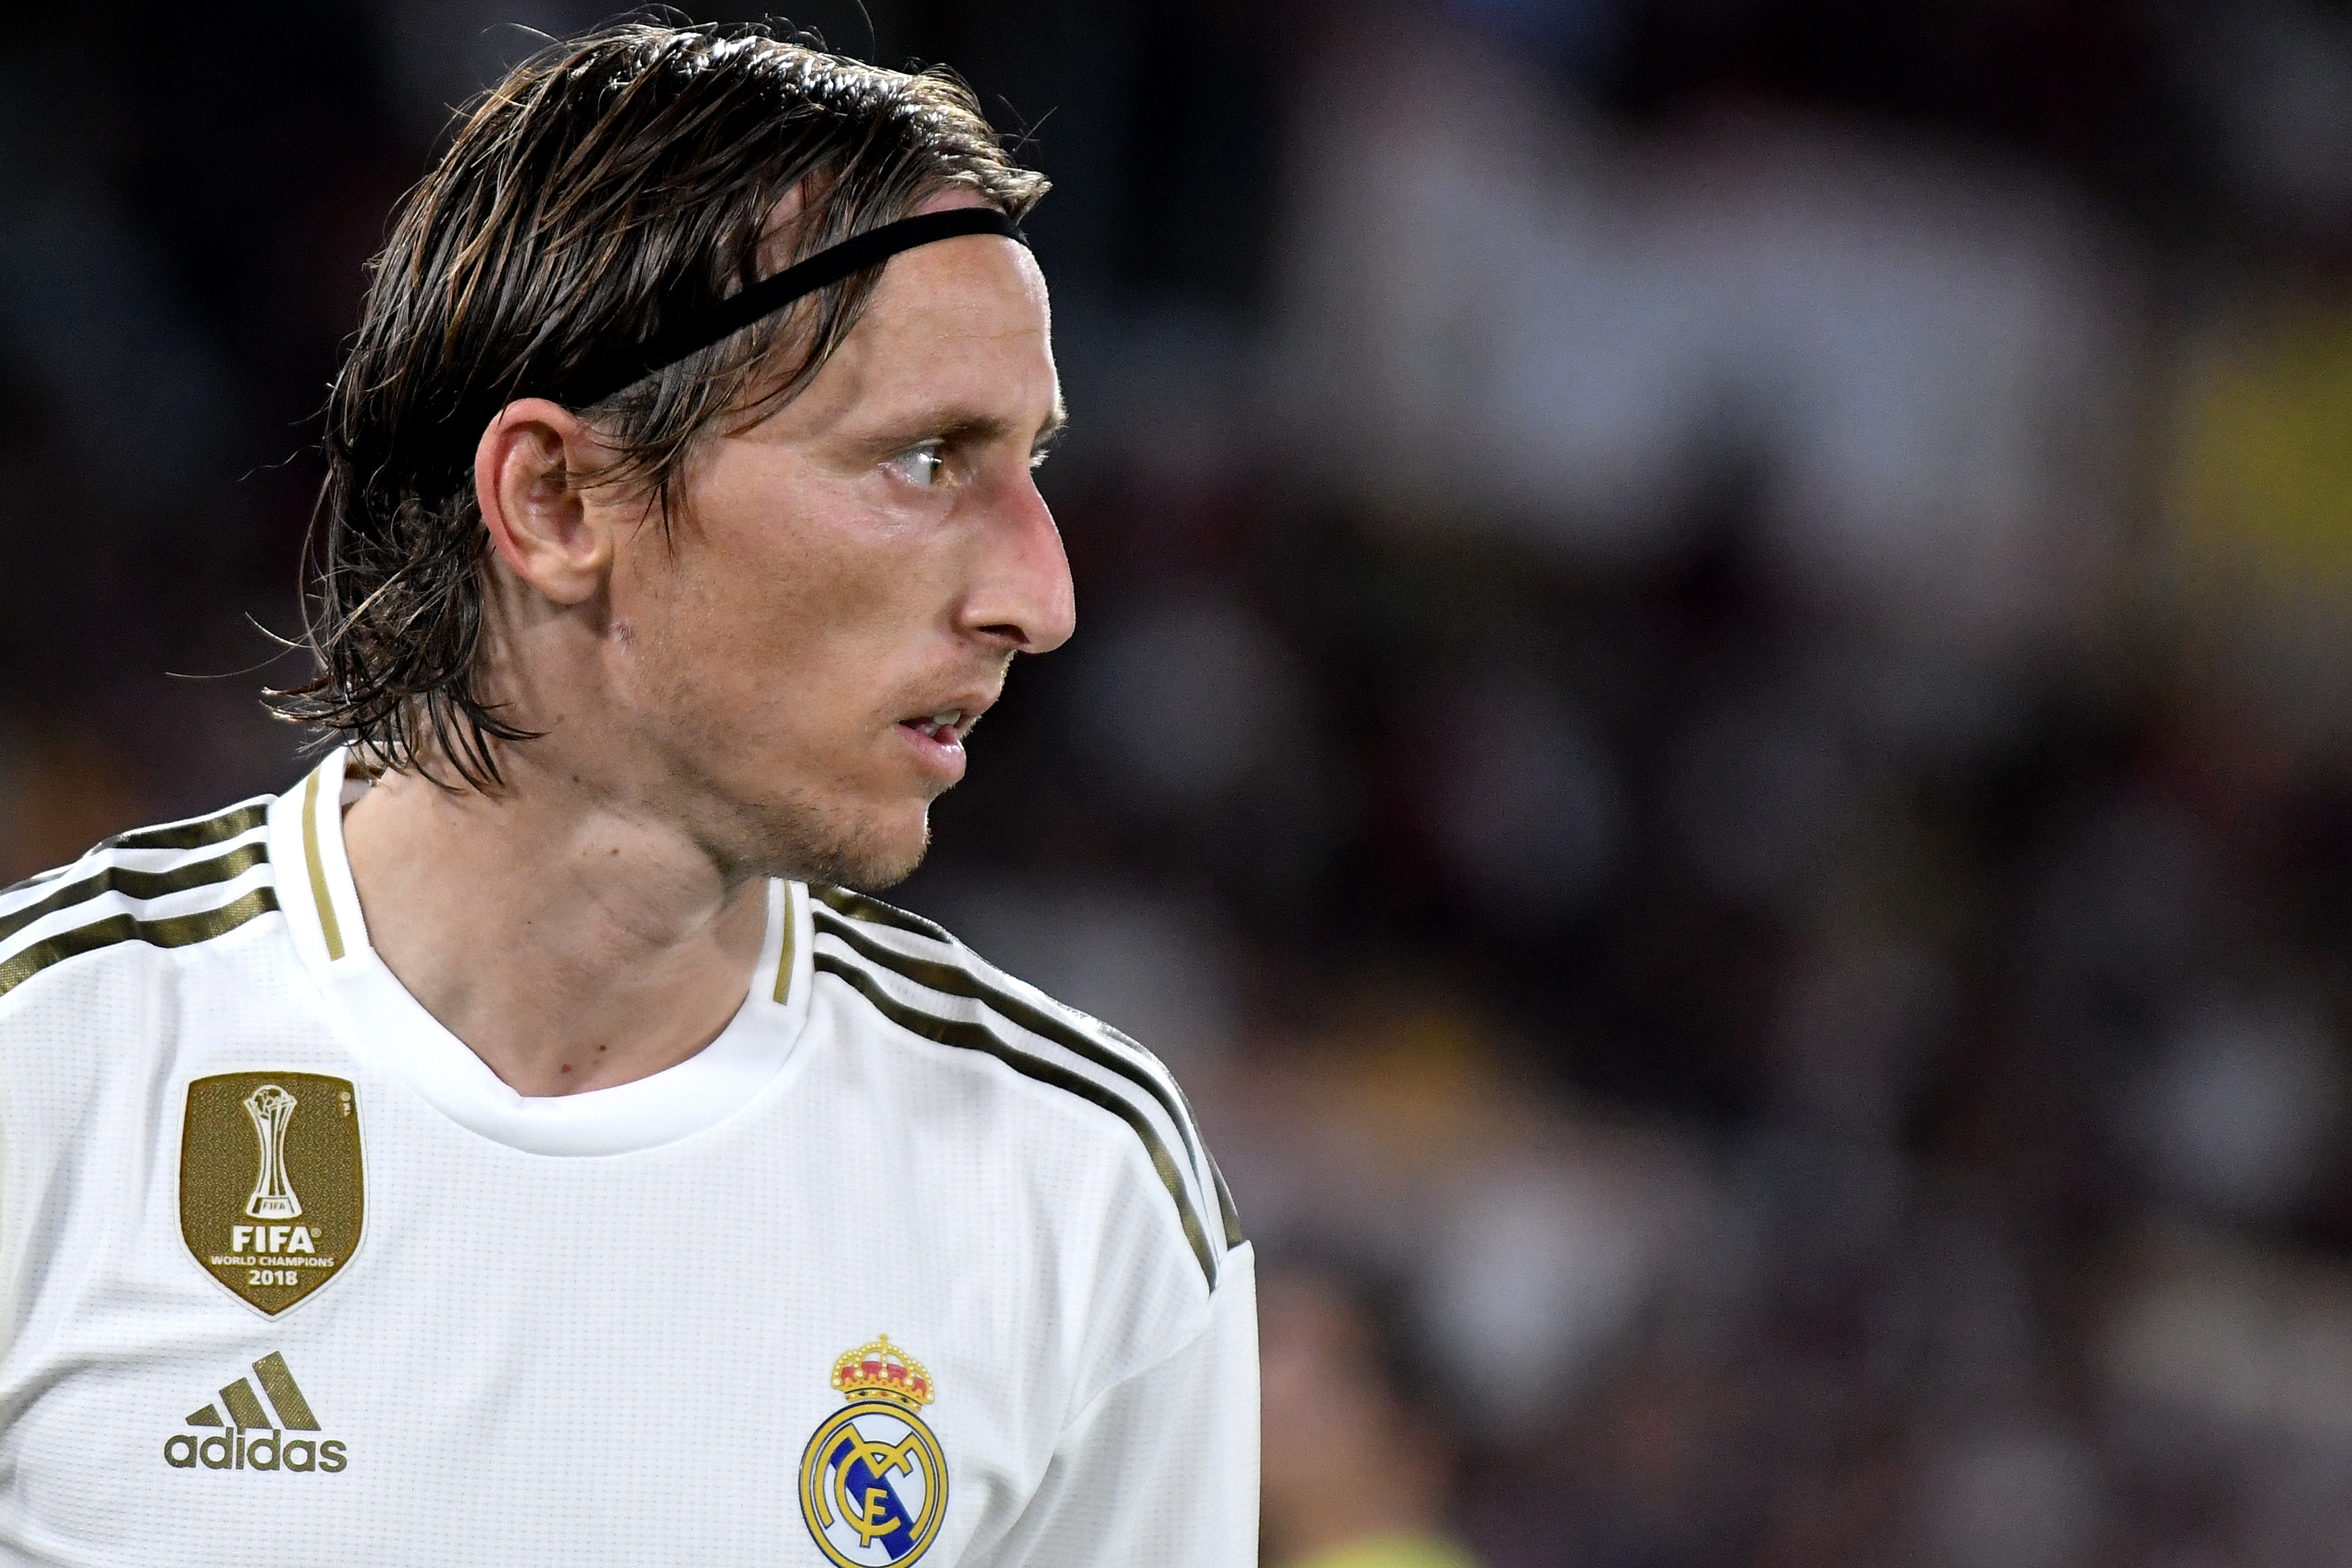 Real Madrid's Ballon d'Or winner Luka Modric talks up Serie A move